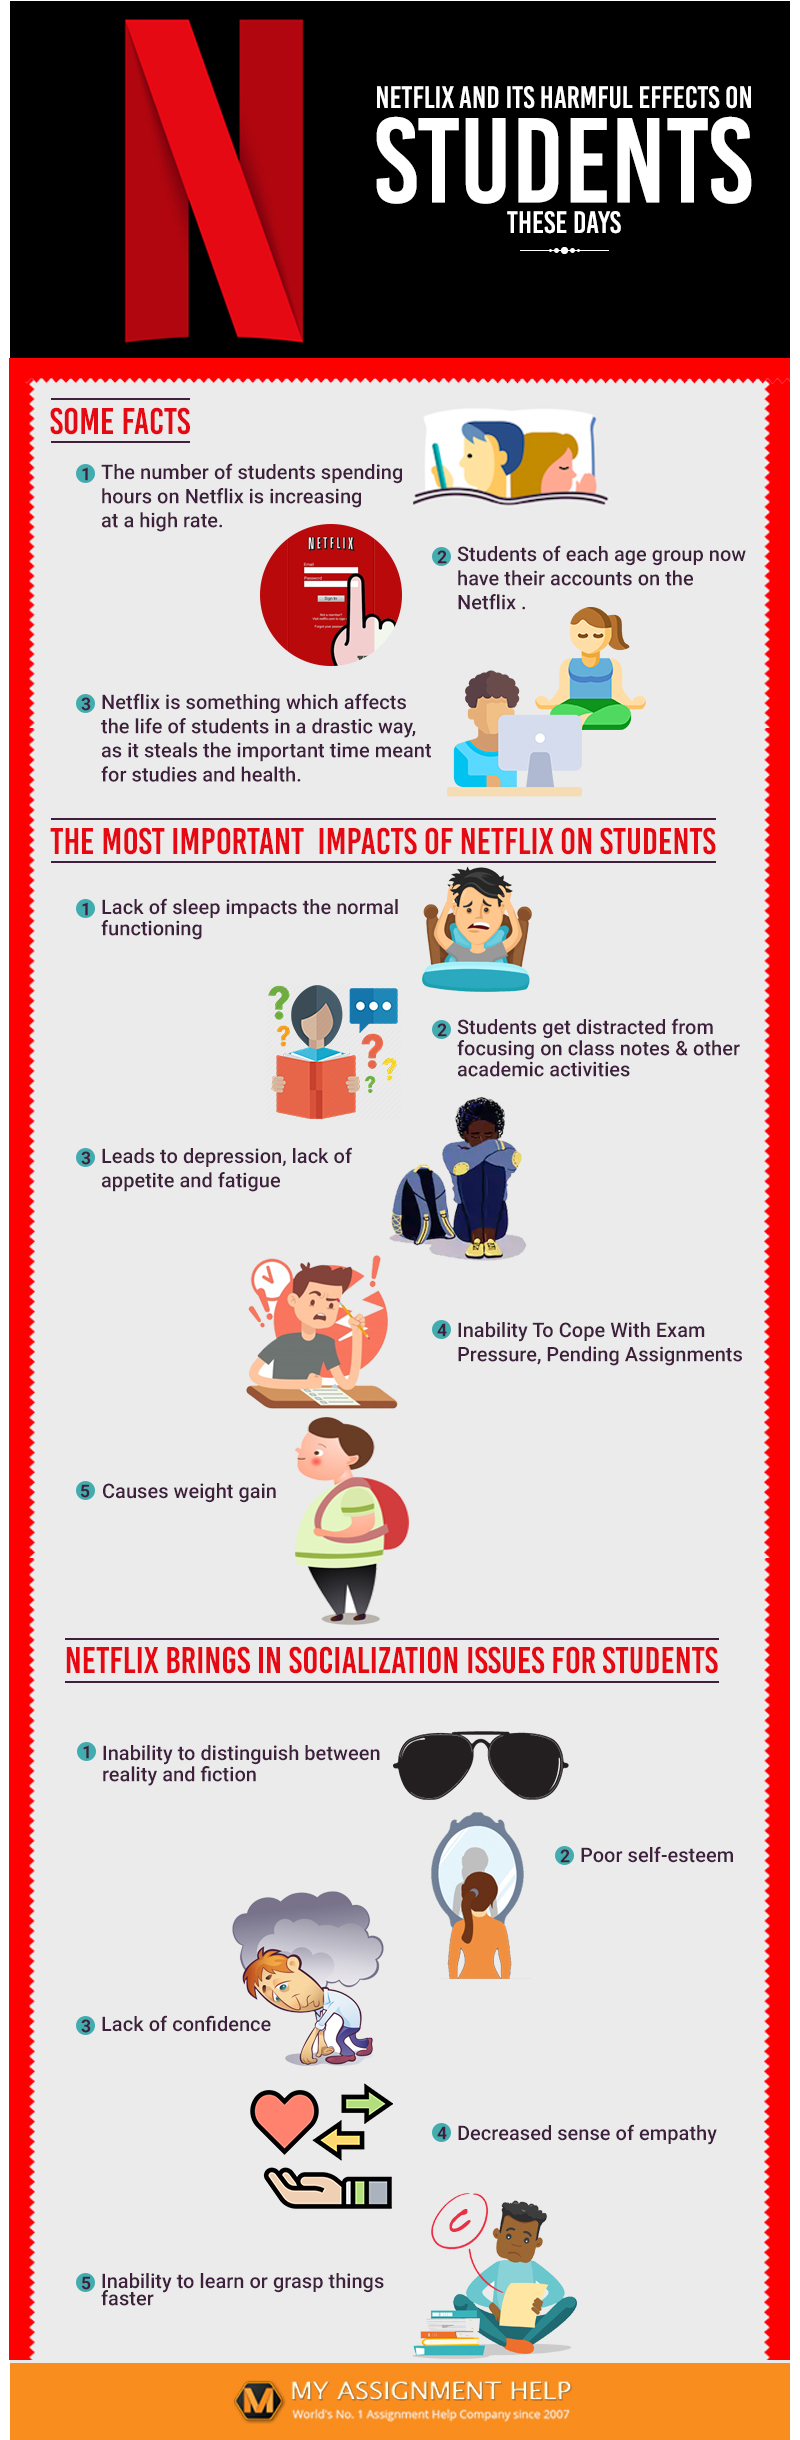 Netflix-and-Its-Harmful-Effects-On-Students-These-Days